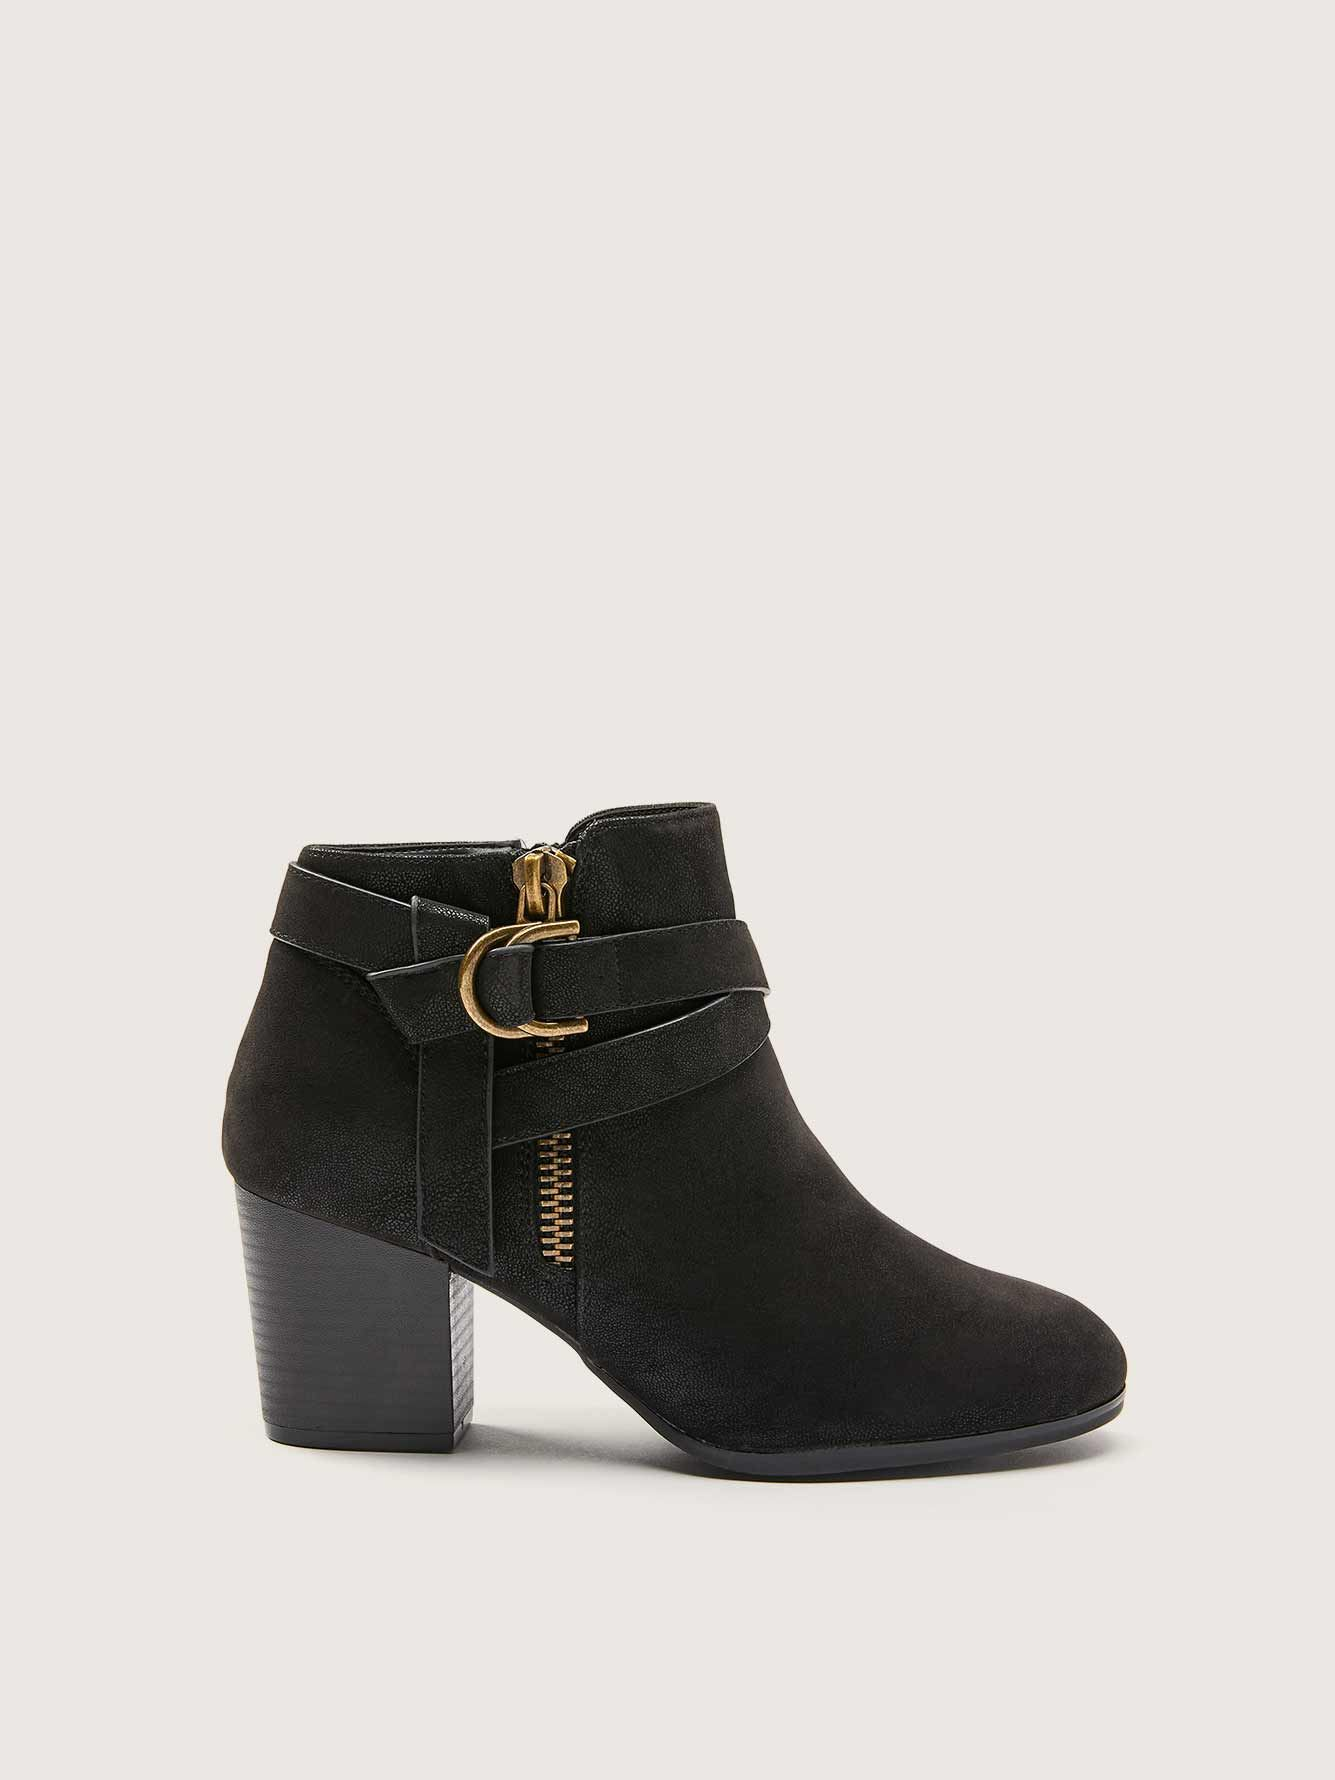 Wide Mid Heel Ankle Bootie with Side Strap - Addition Elle